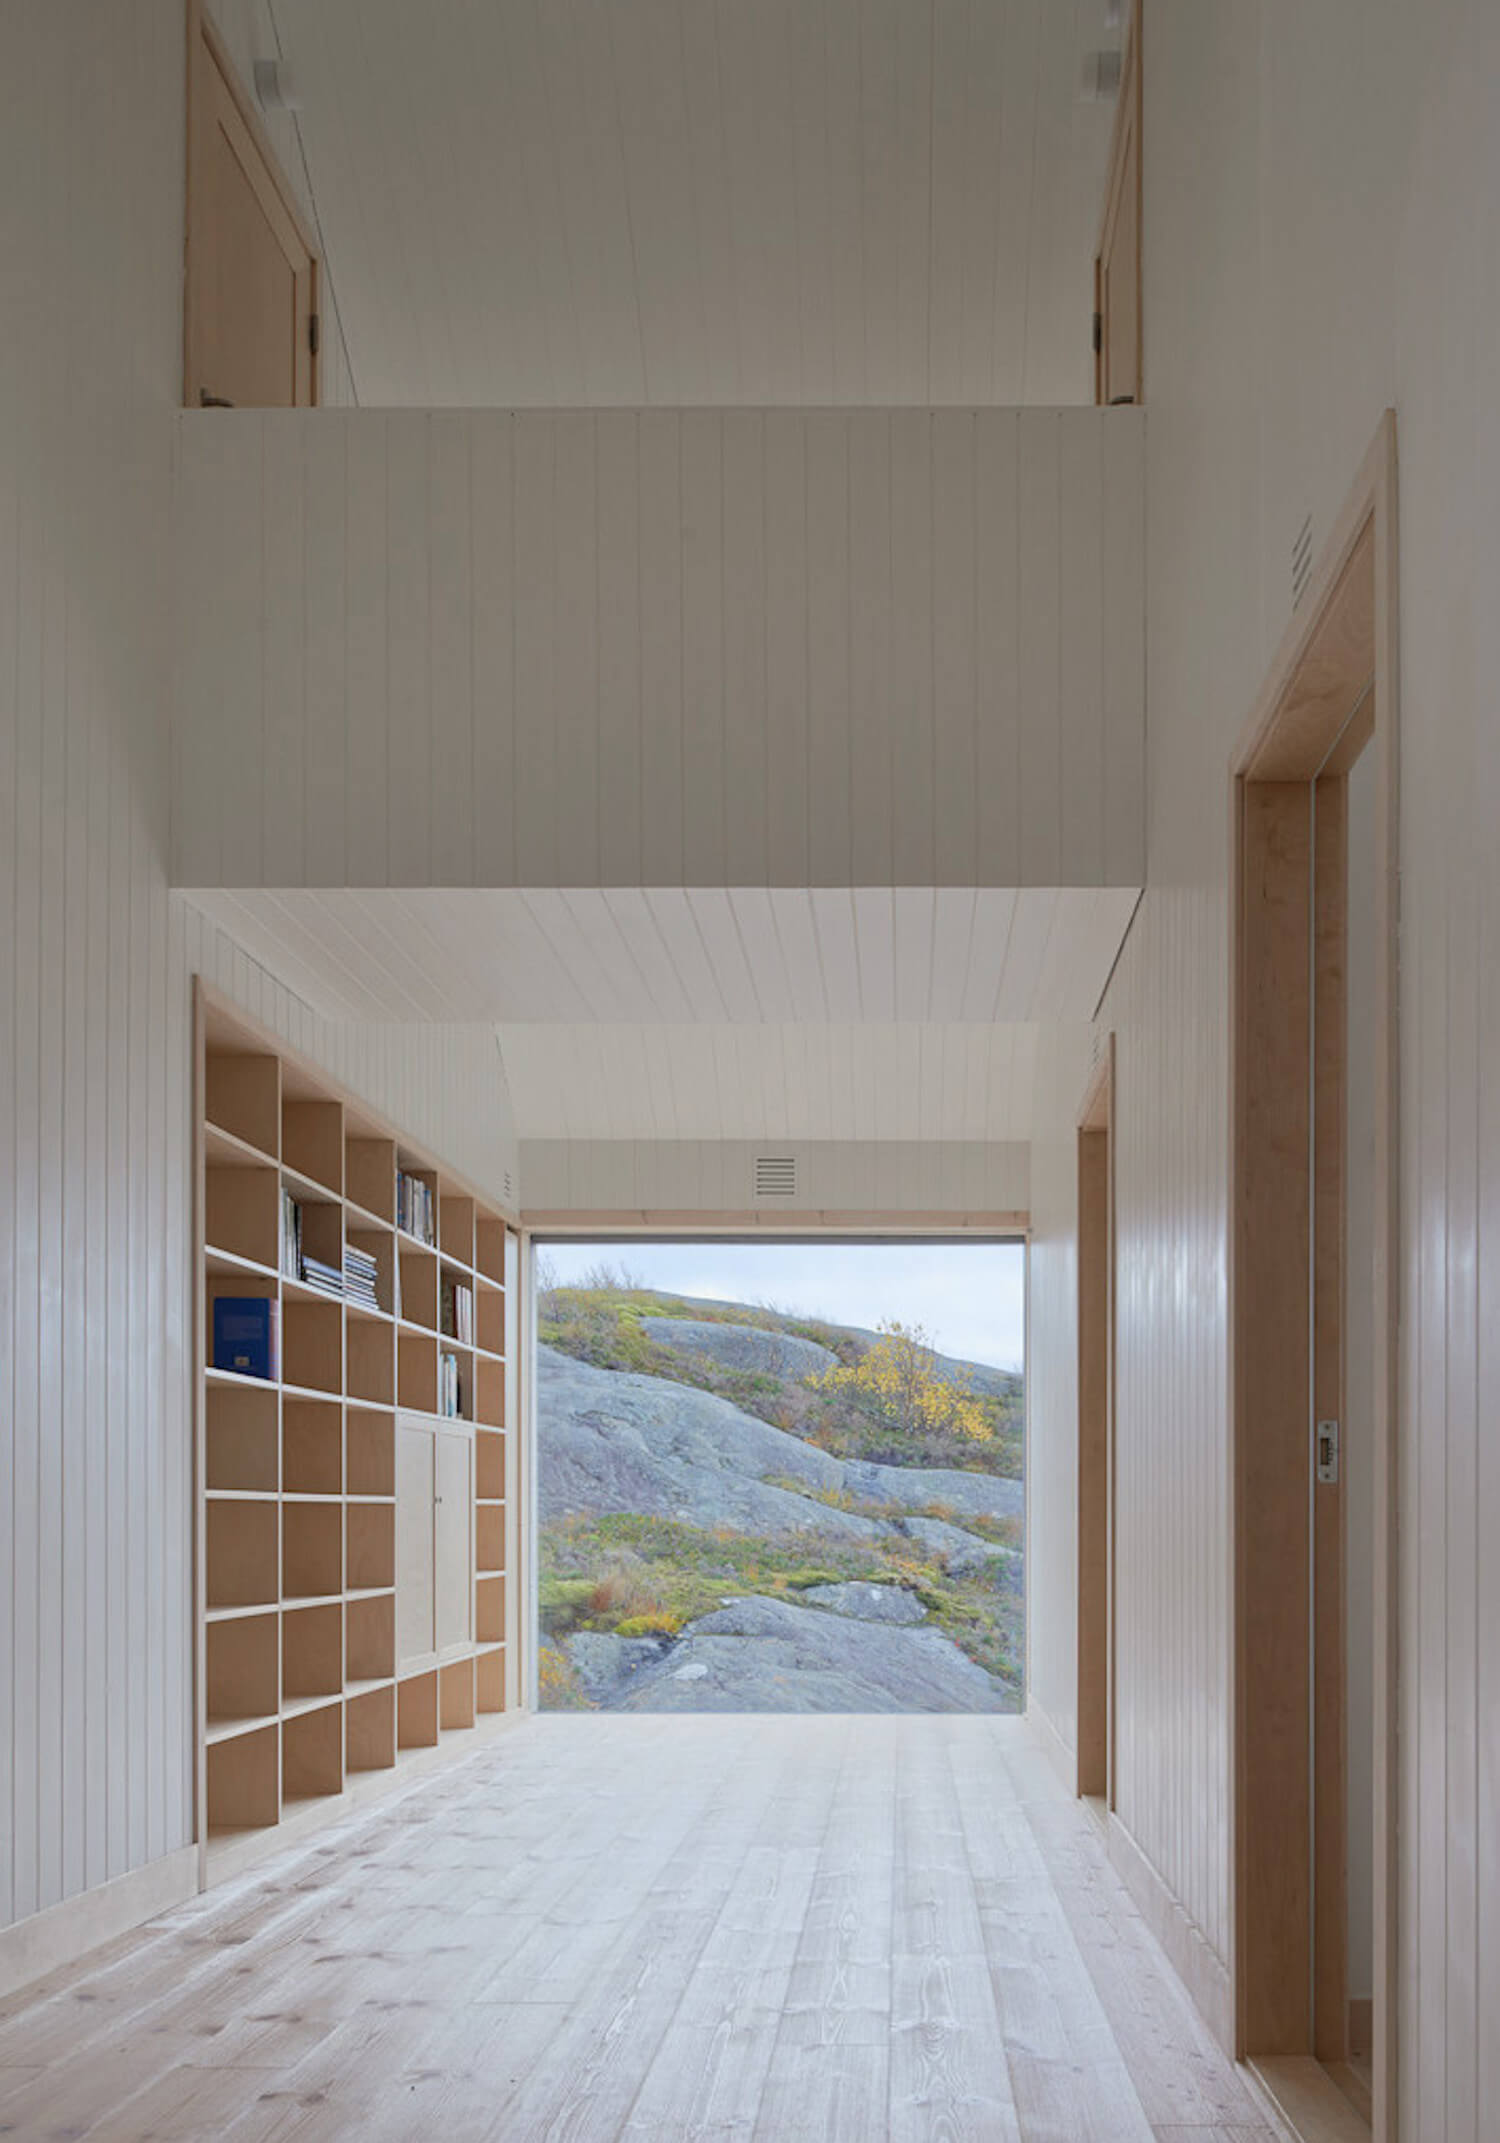 est living roundup log cabins window on the lake vega cottage kolman boye architects norway cabin 14